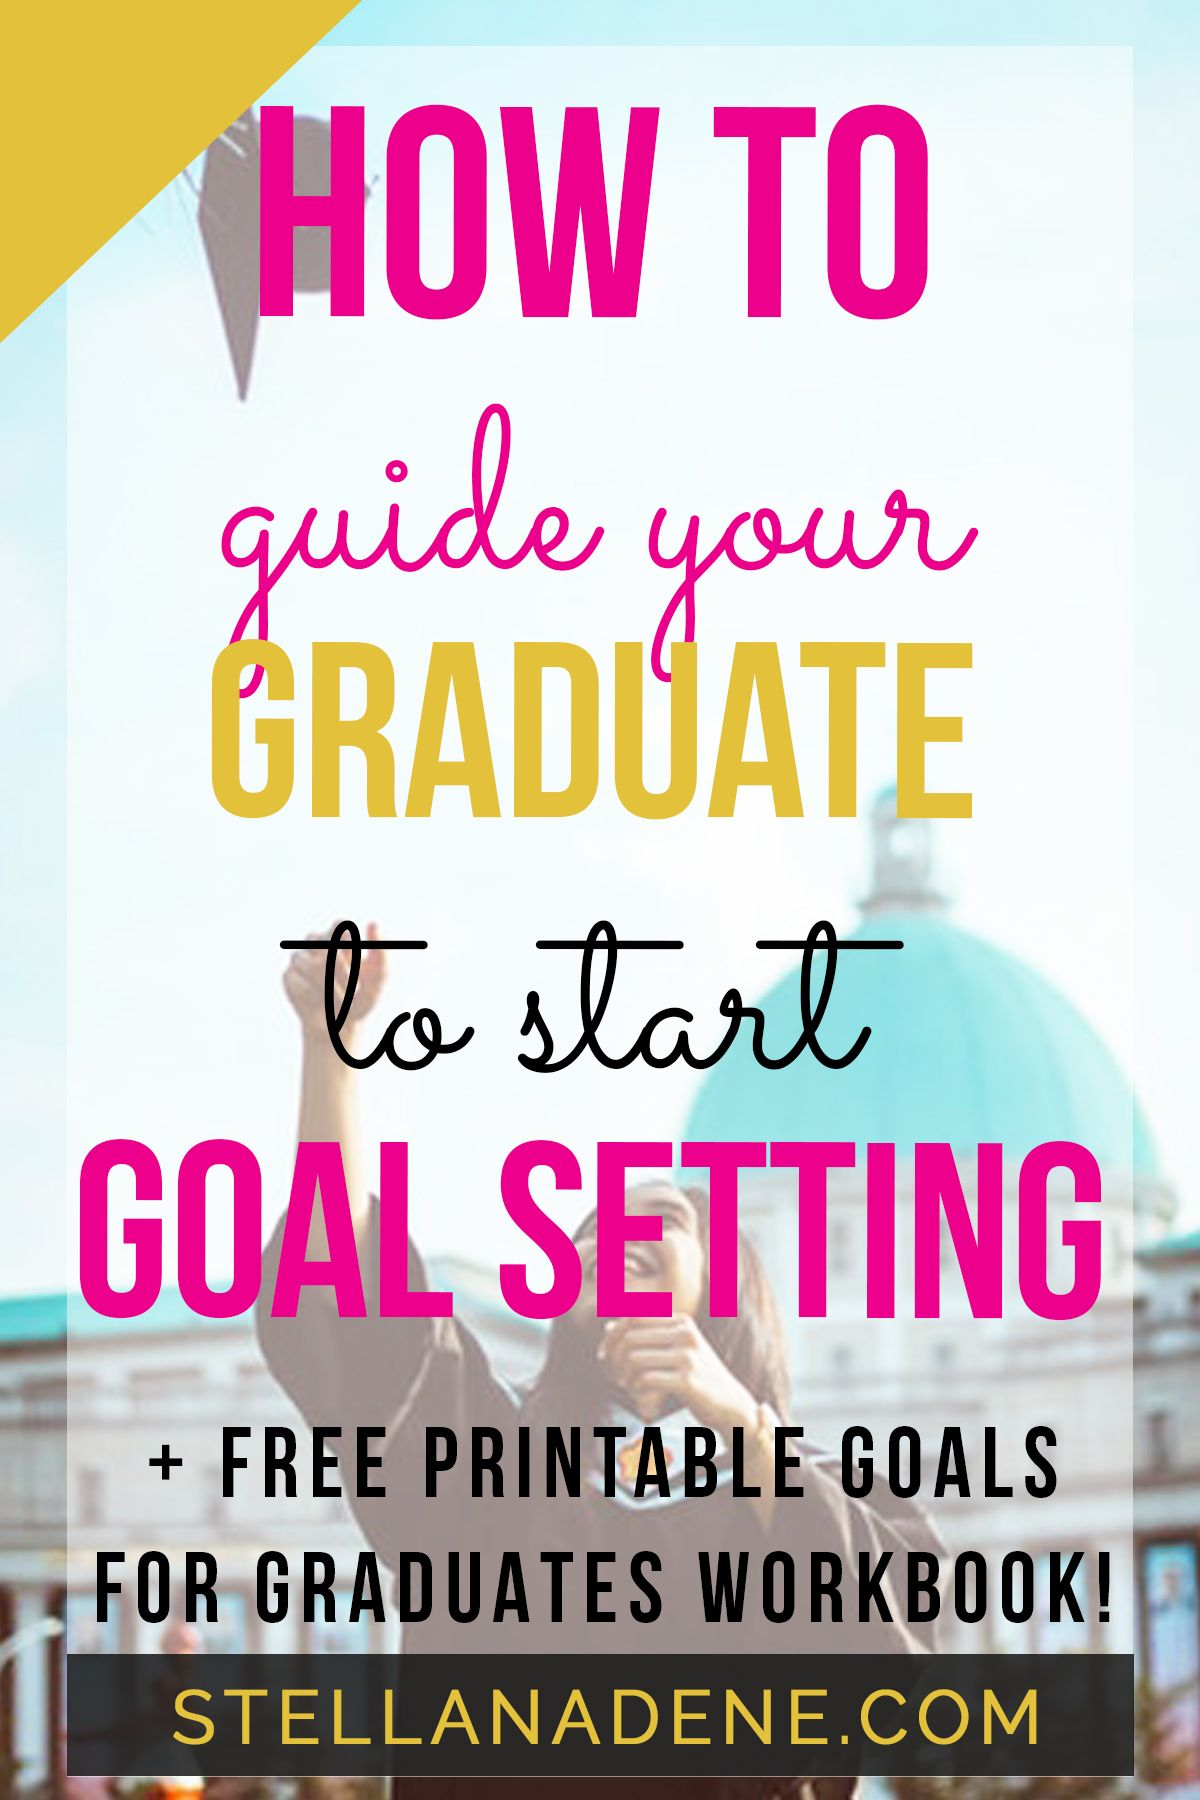 5 Essential Goals To Guide Your Graduate In Setting